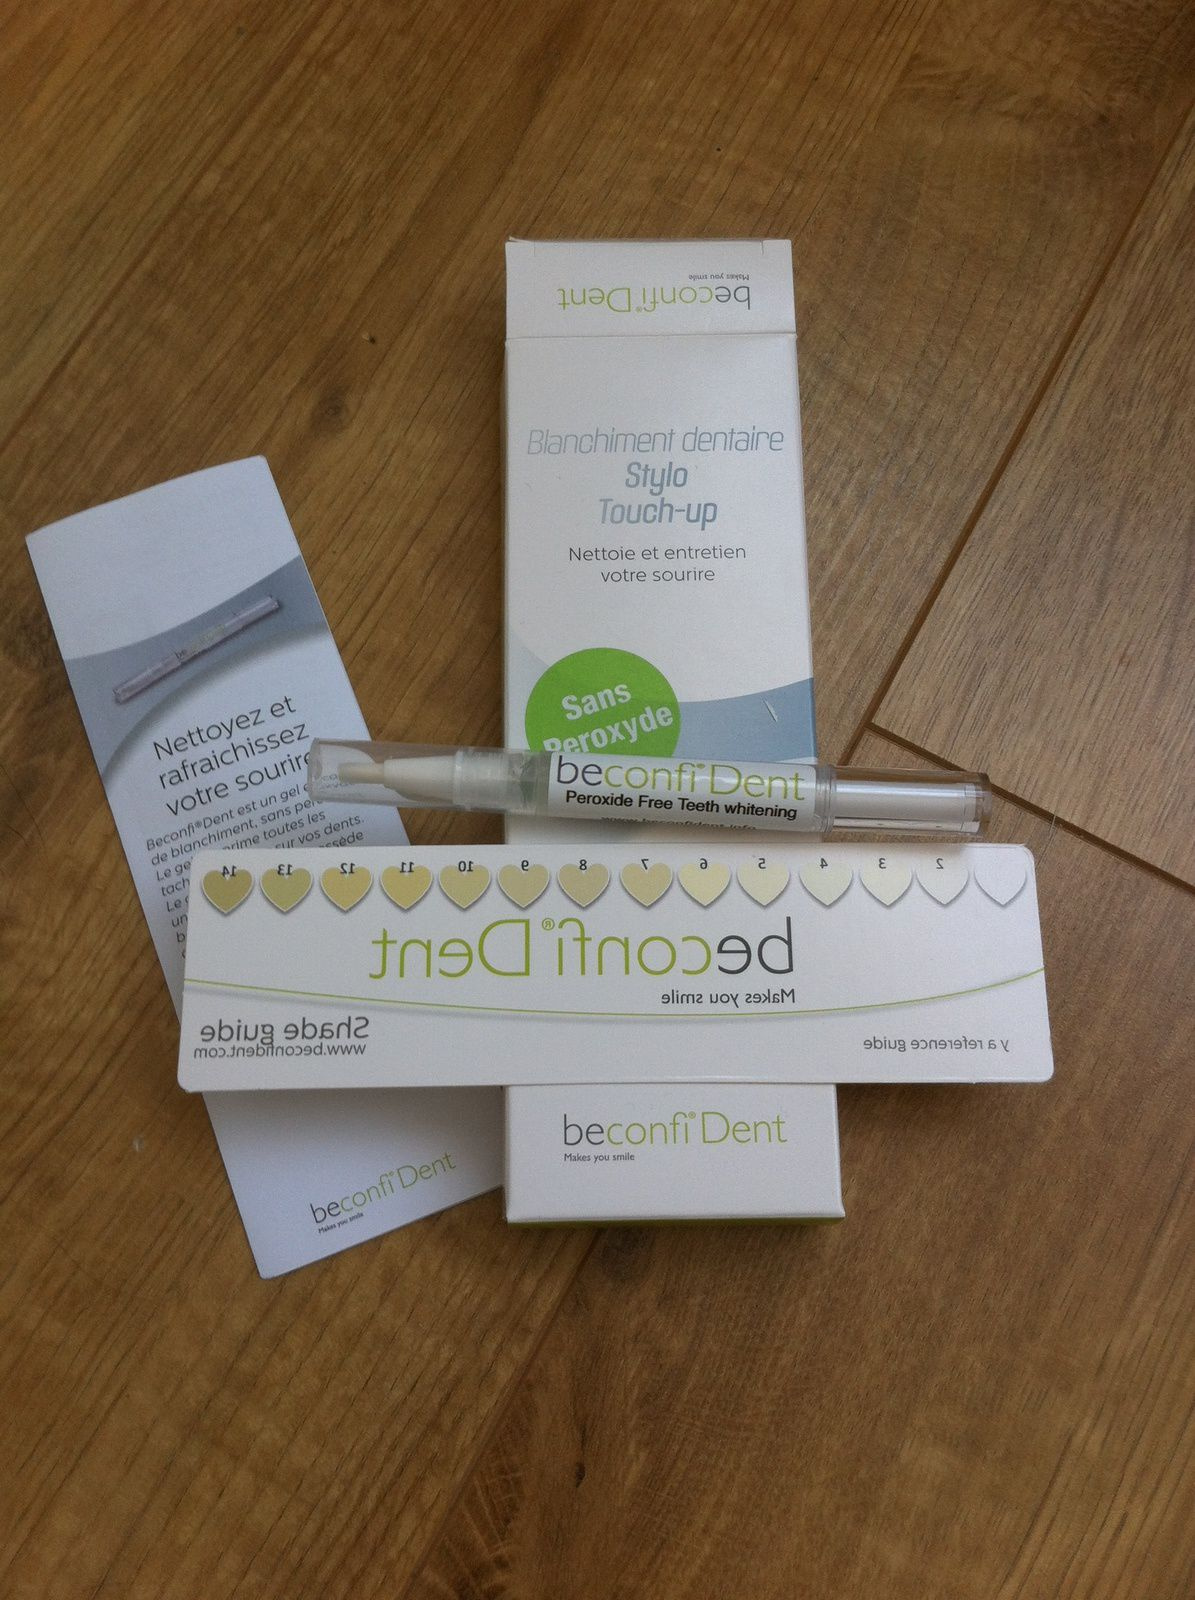 Blanchiment des dents - La solution BeconfiDent